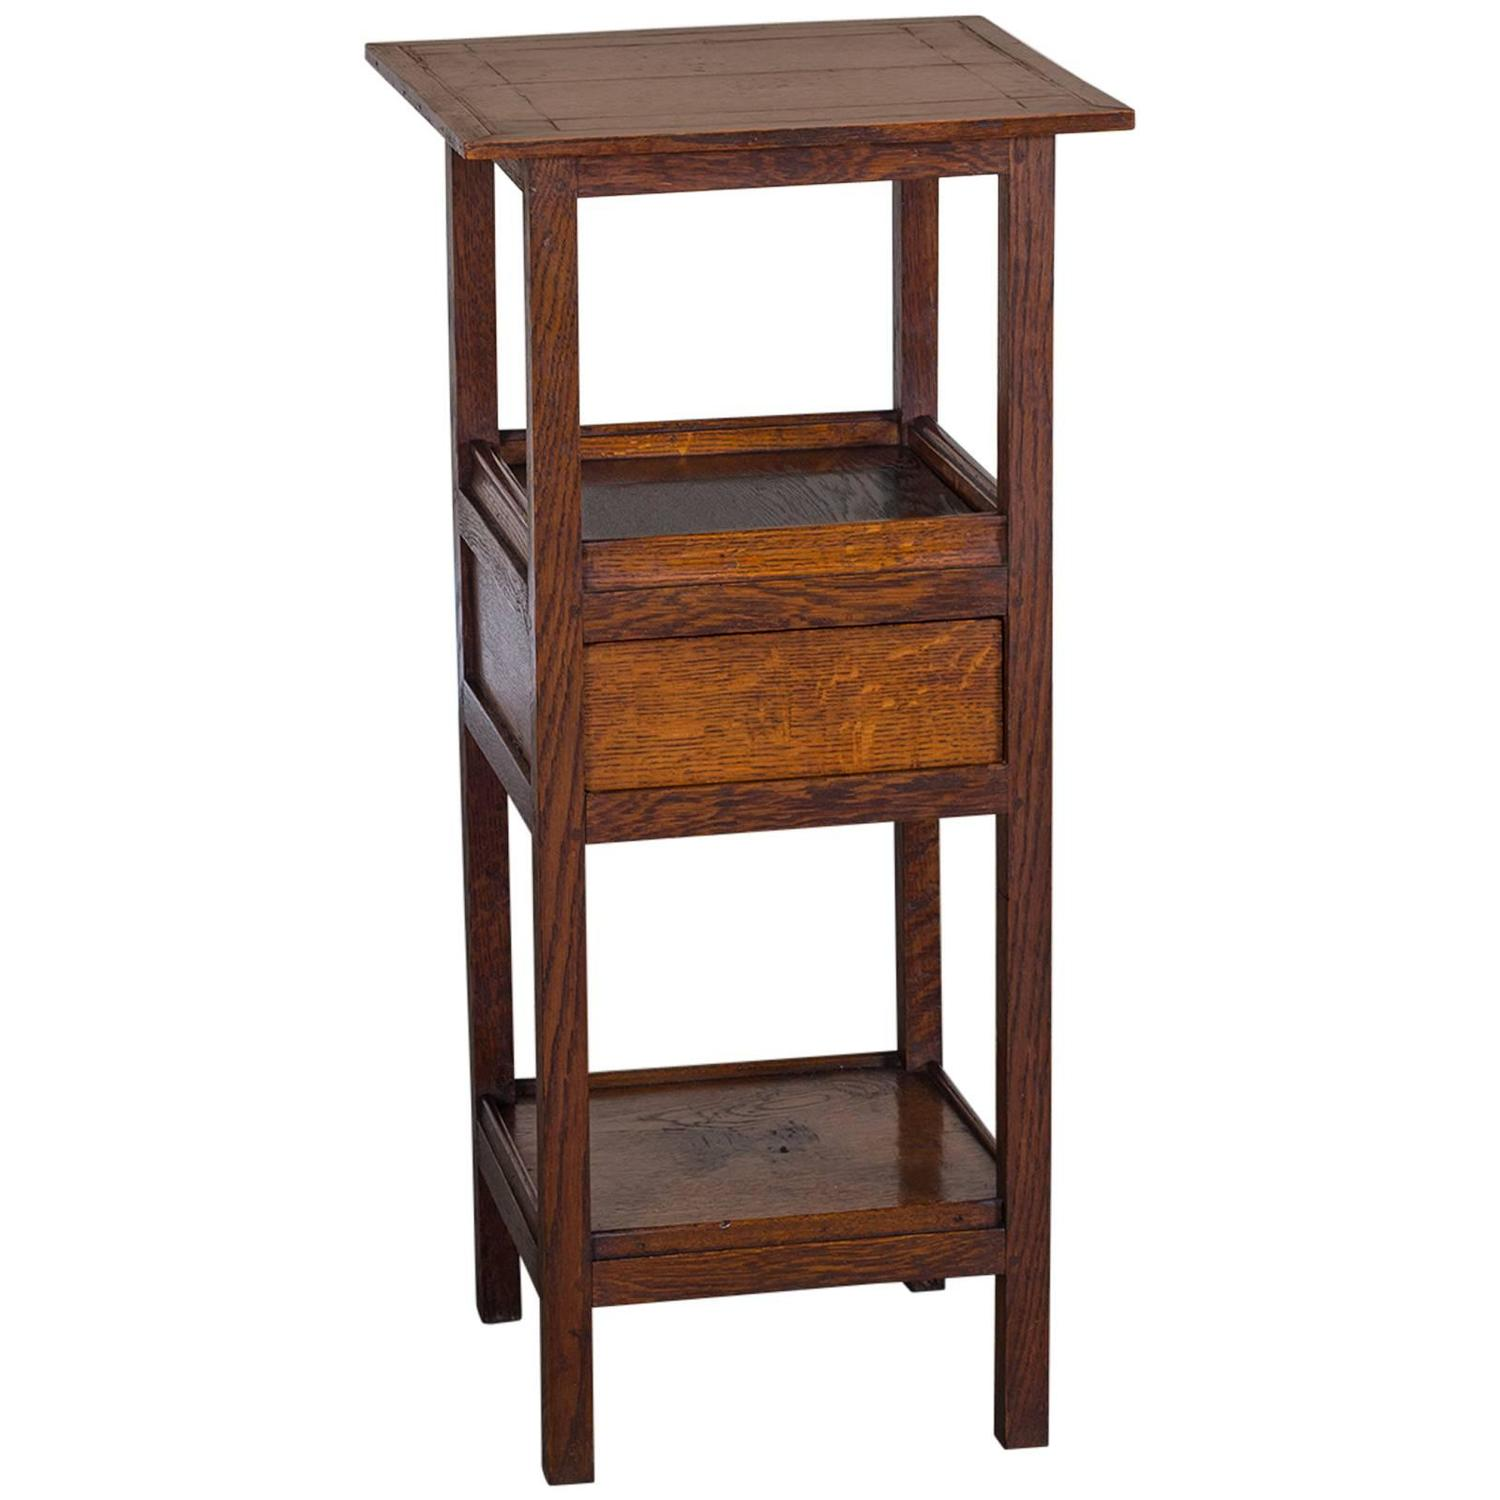 Arts and crafts tables - Antique English Arts And Crafts Three Tier Oak Table Hidden Drawer Circa 1885 At 1stdibs